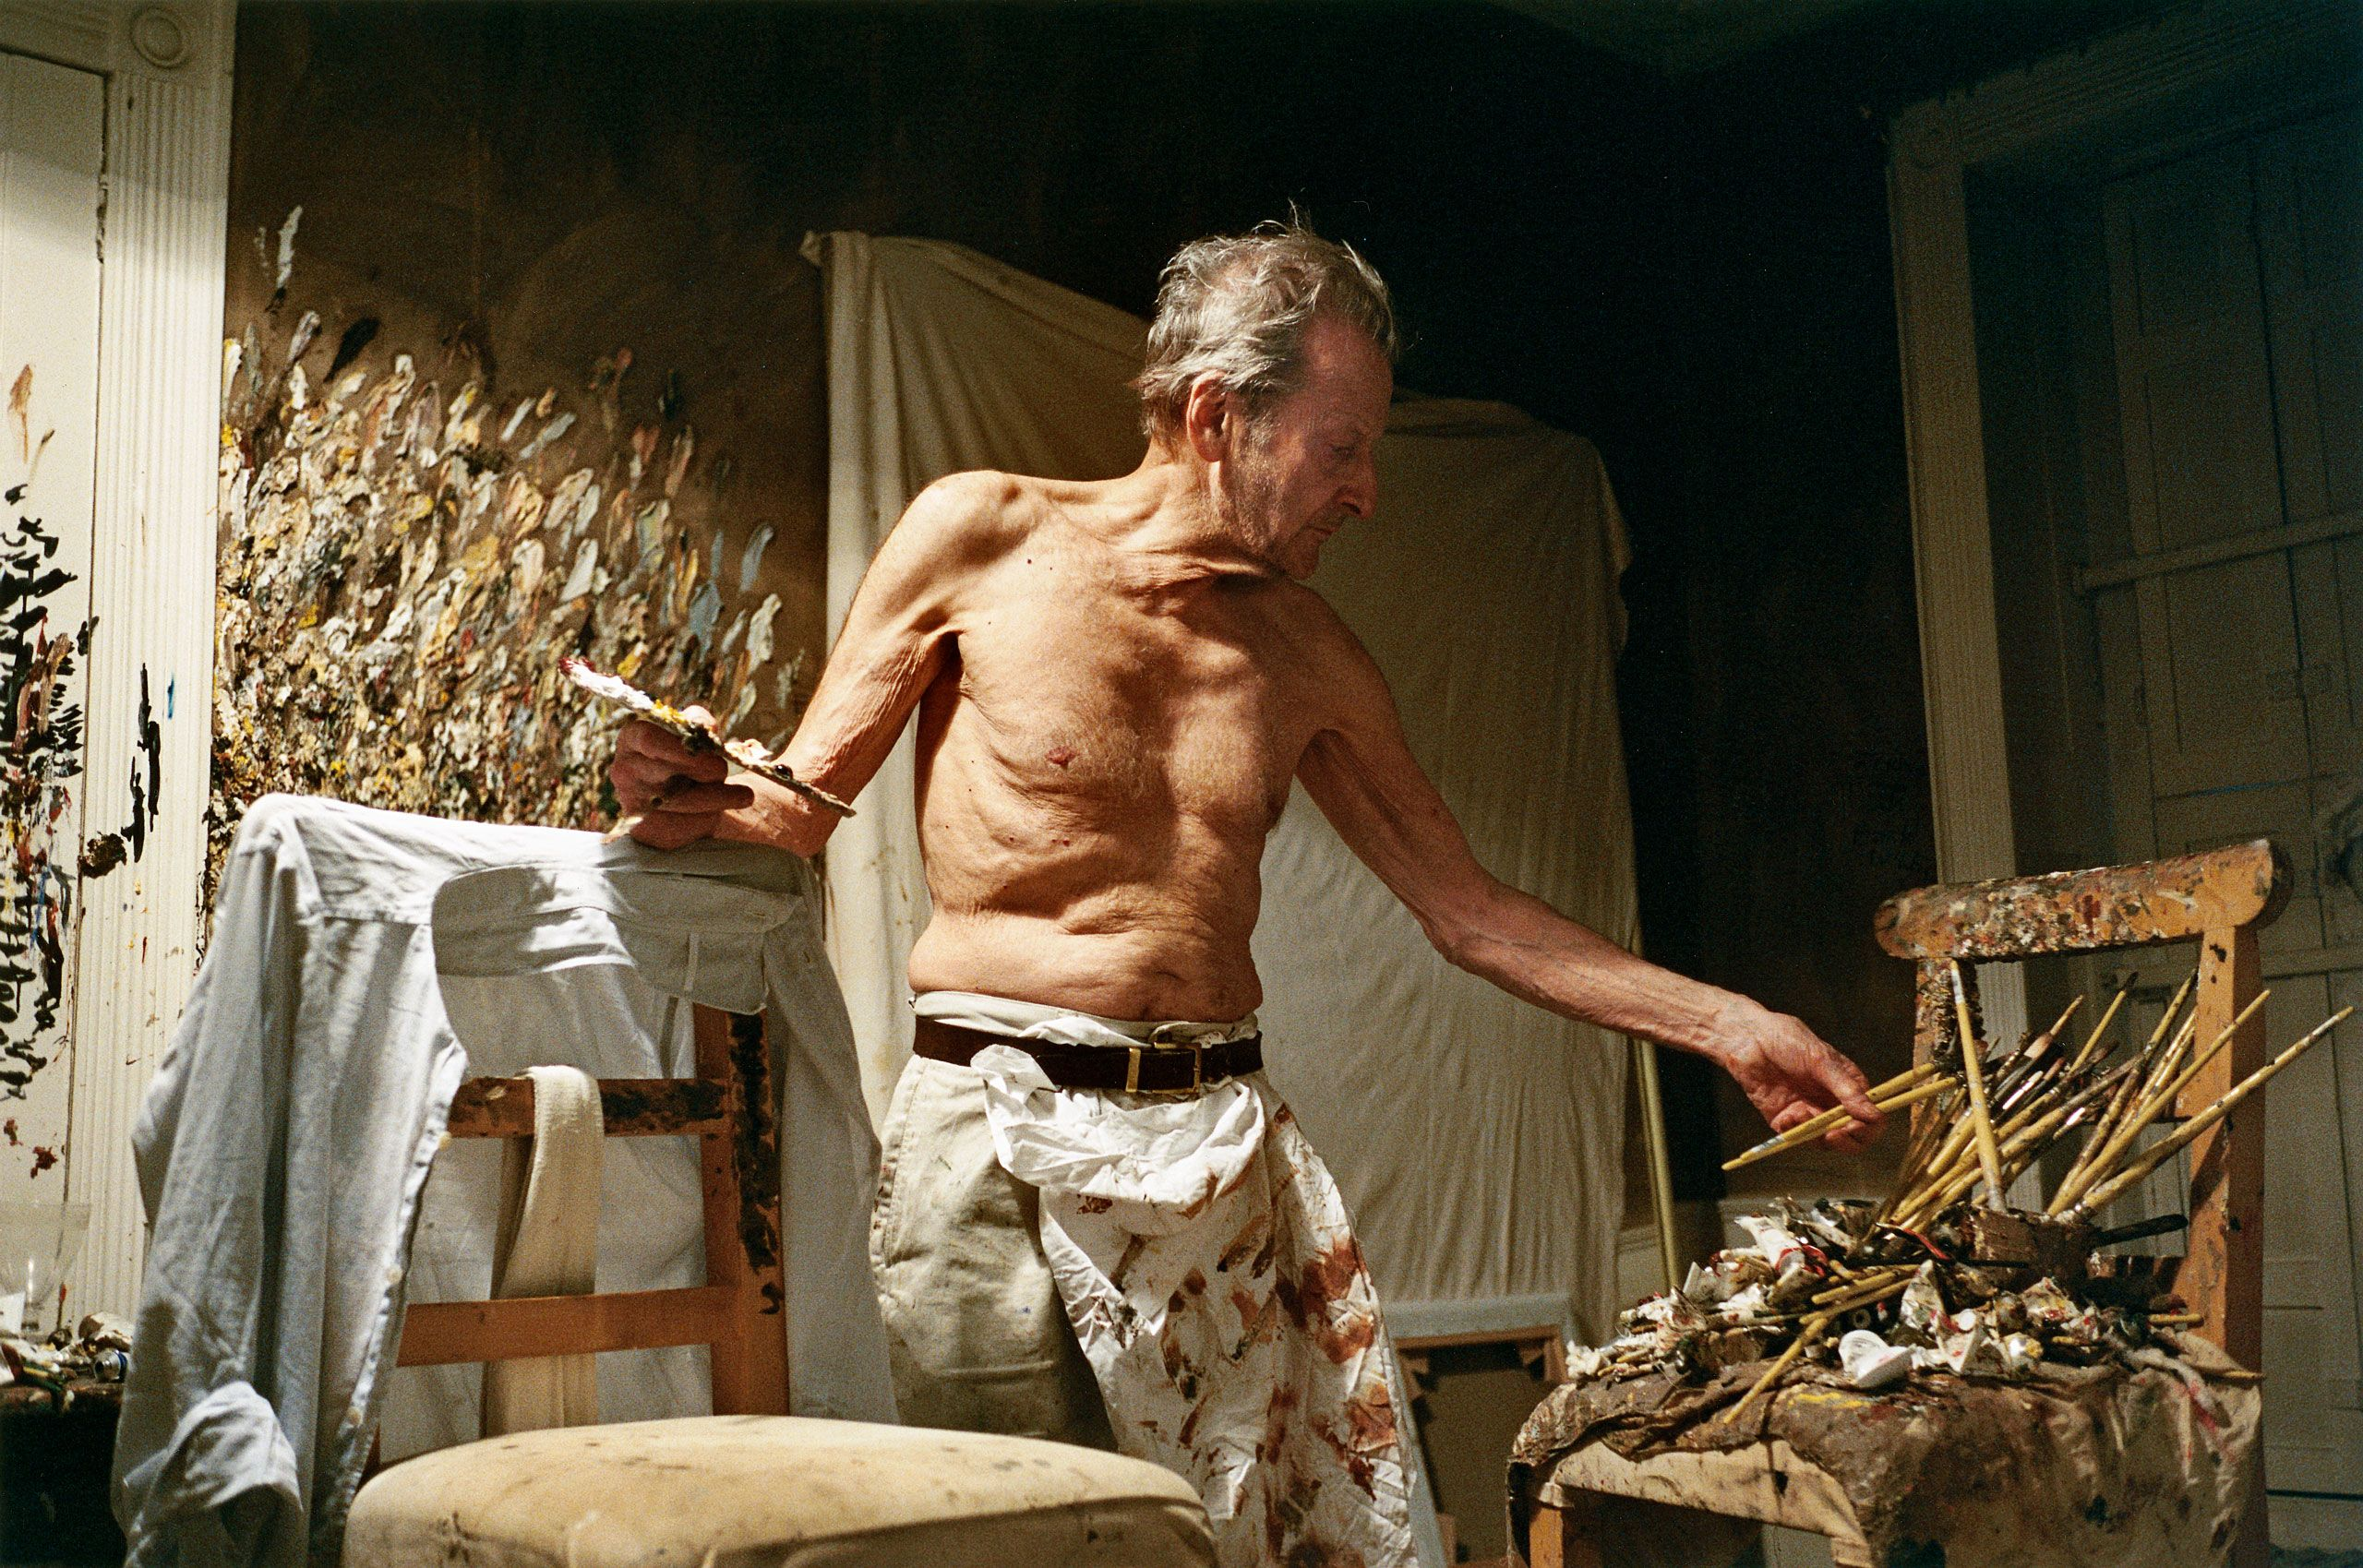 lucian-freud-bridgeman-main-2560-2560x1699